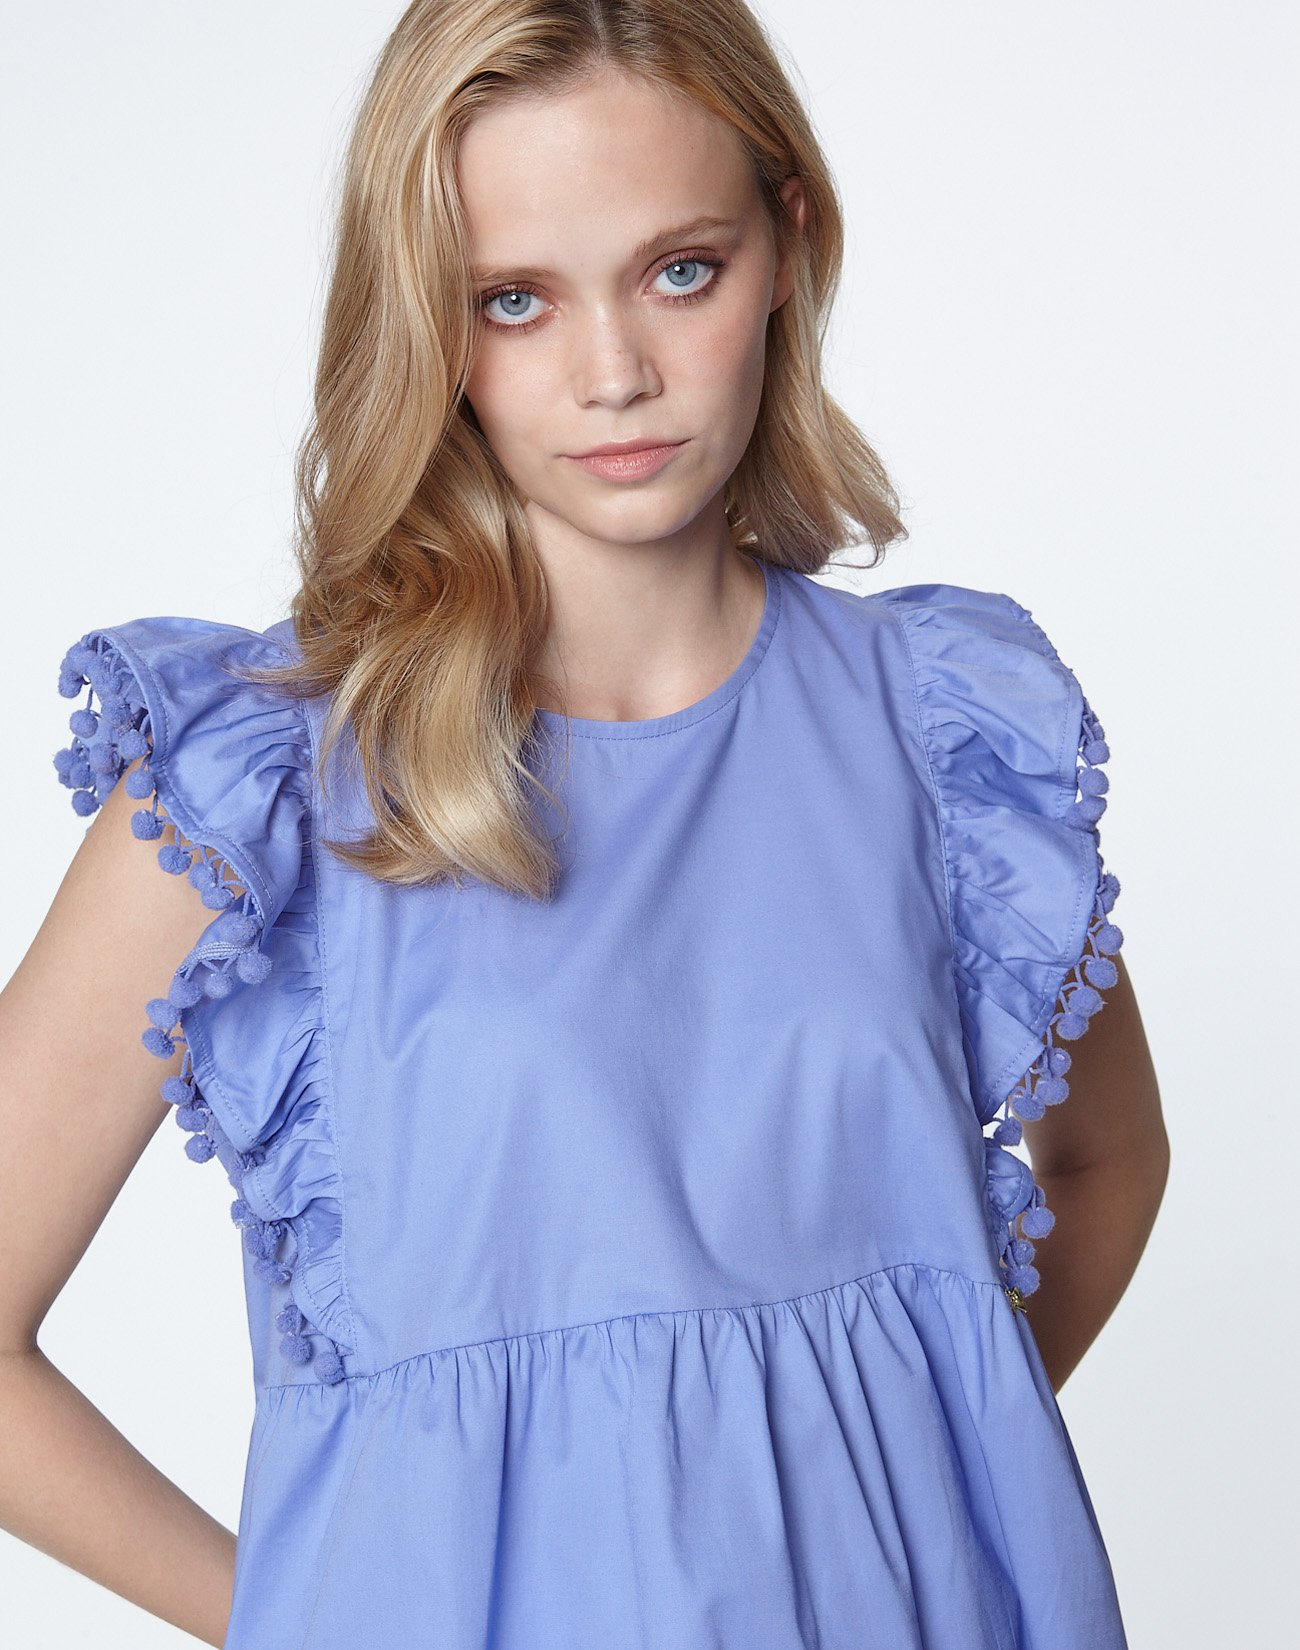 Top with ruffles and pom poms